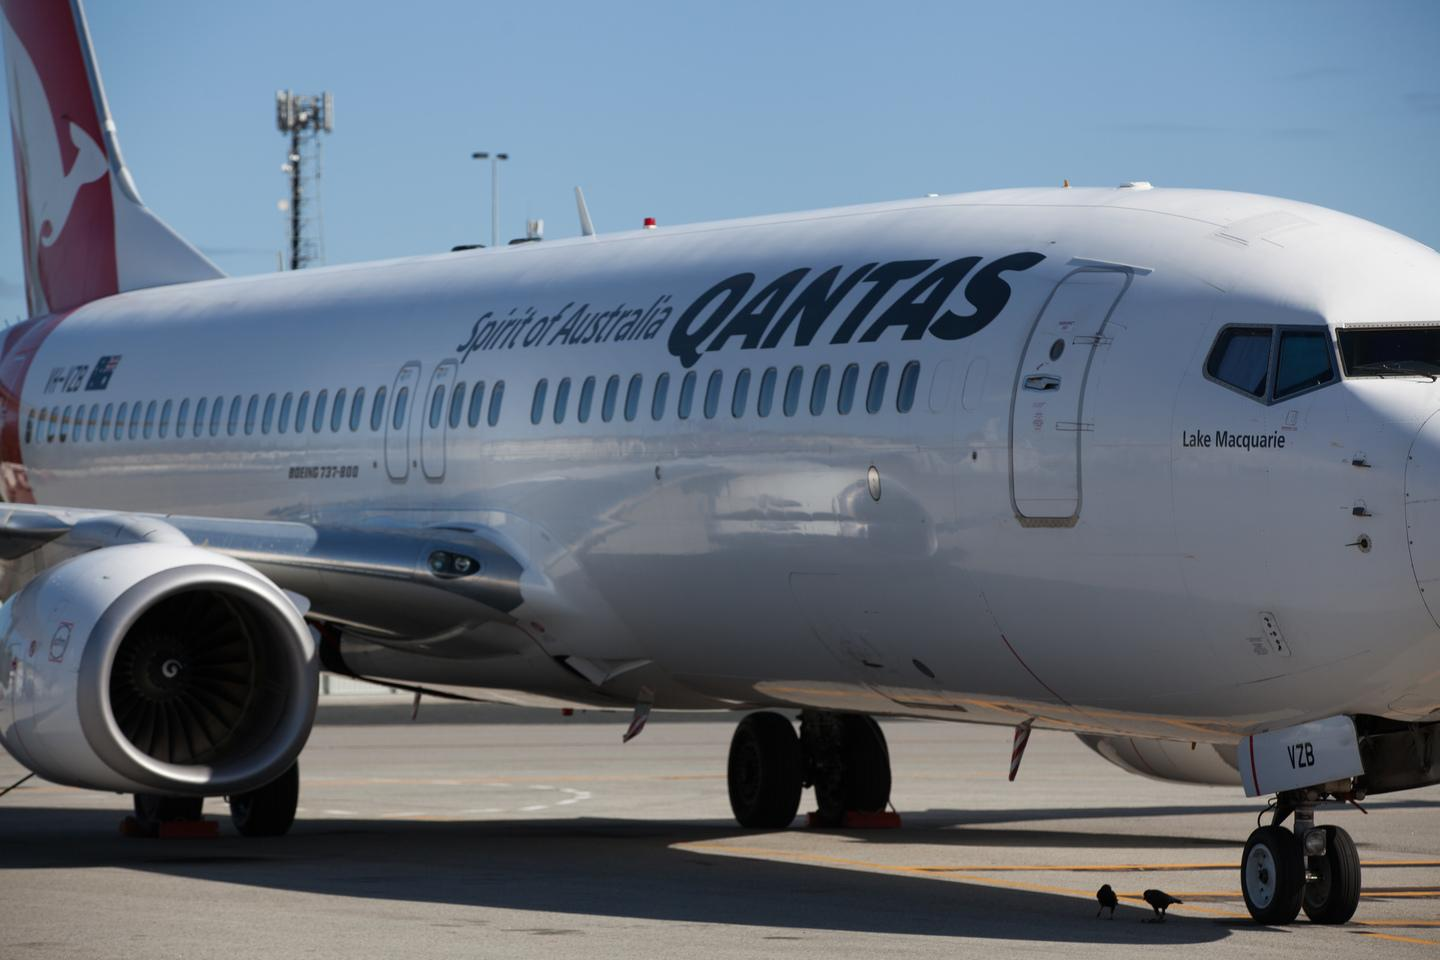 Qantas may move head offices to cut costs